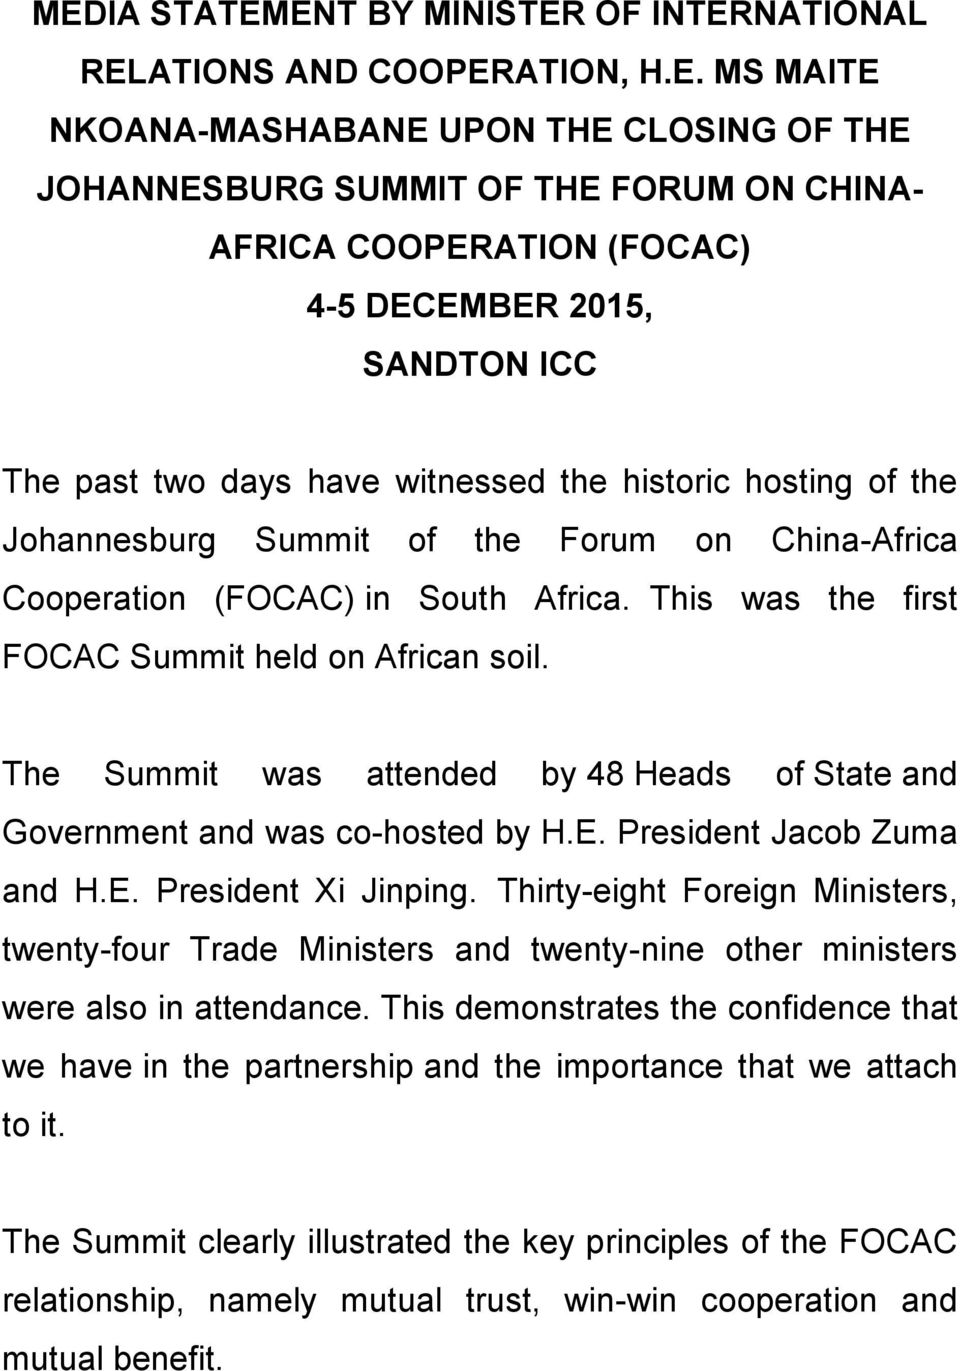 This was the first FOCAC Summit held on African soil. The Summit was attended by 48 Heads of State and Government and was co-hosted by H.E. President Jacob Zuma and H.E. President Xi Jinping.